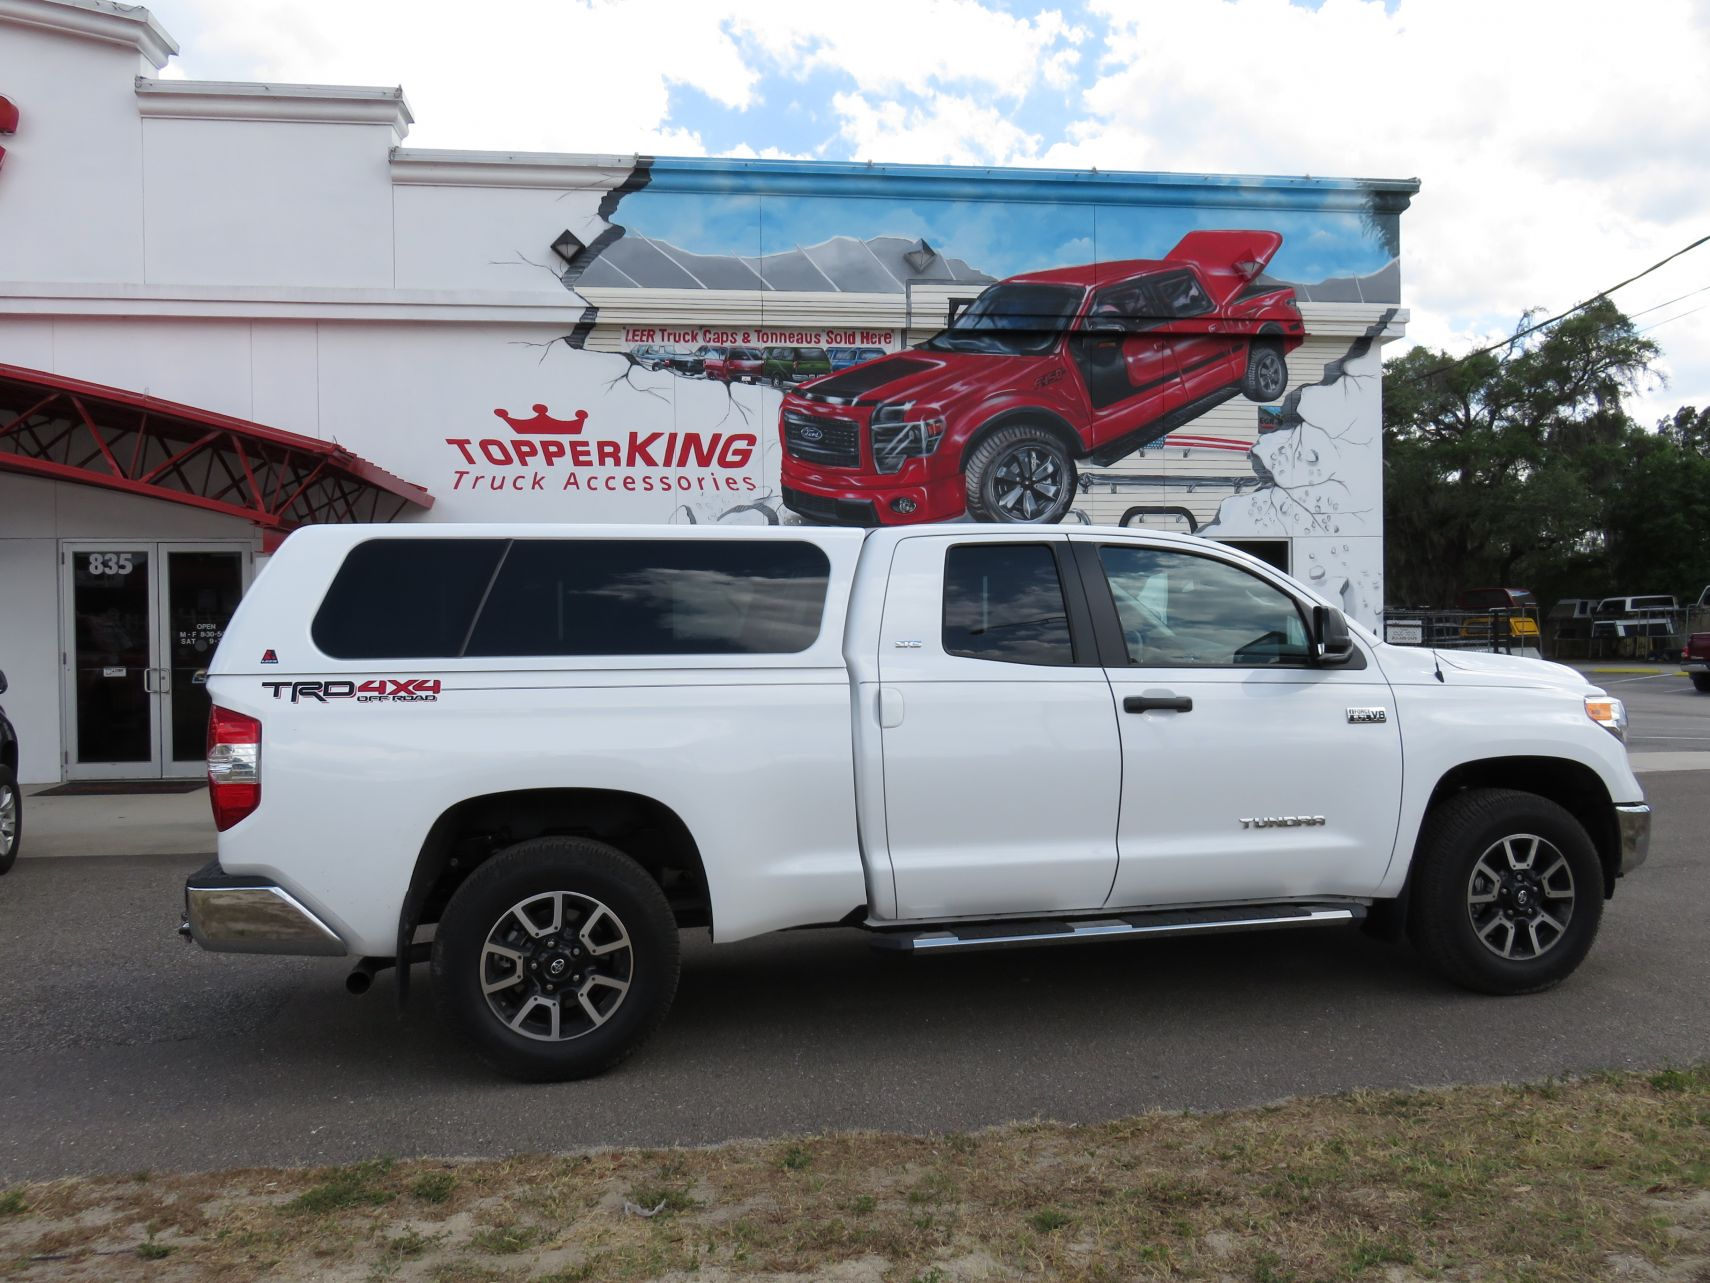 2018 Toyota Tundra with LEER 100XL, Running Boards, Custom Hitch by TopperKING in Brandon, FL 813-689-2449 or Clearwater, FL 727-530-9066. Call today!